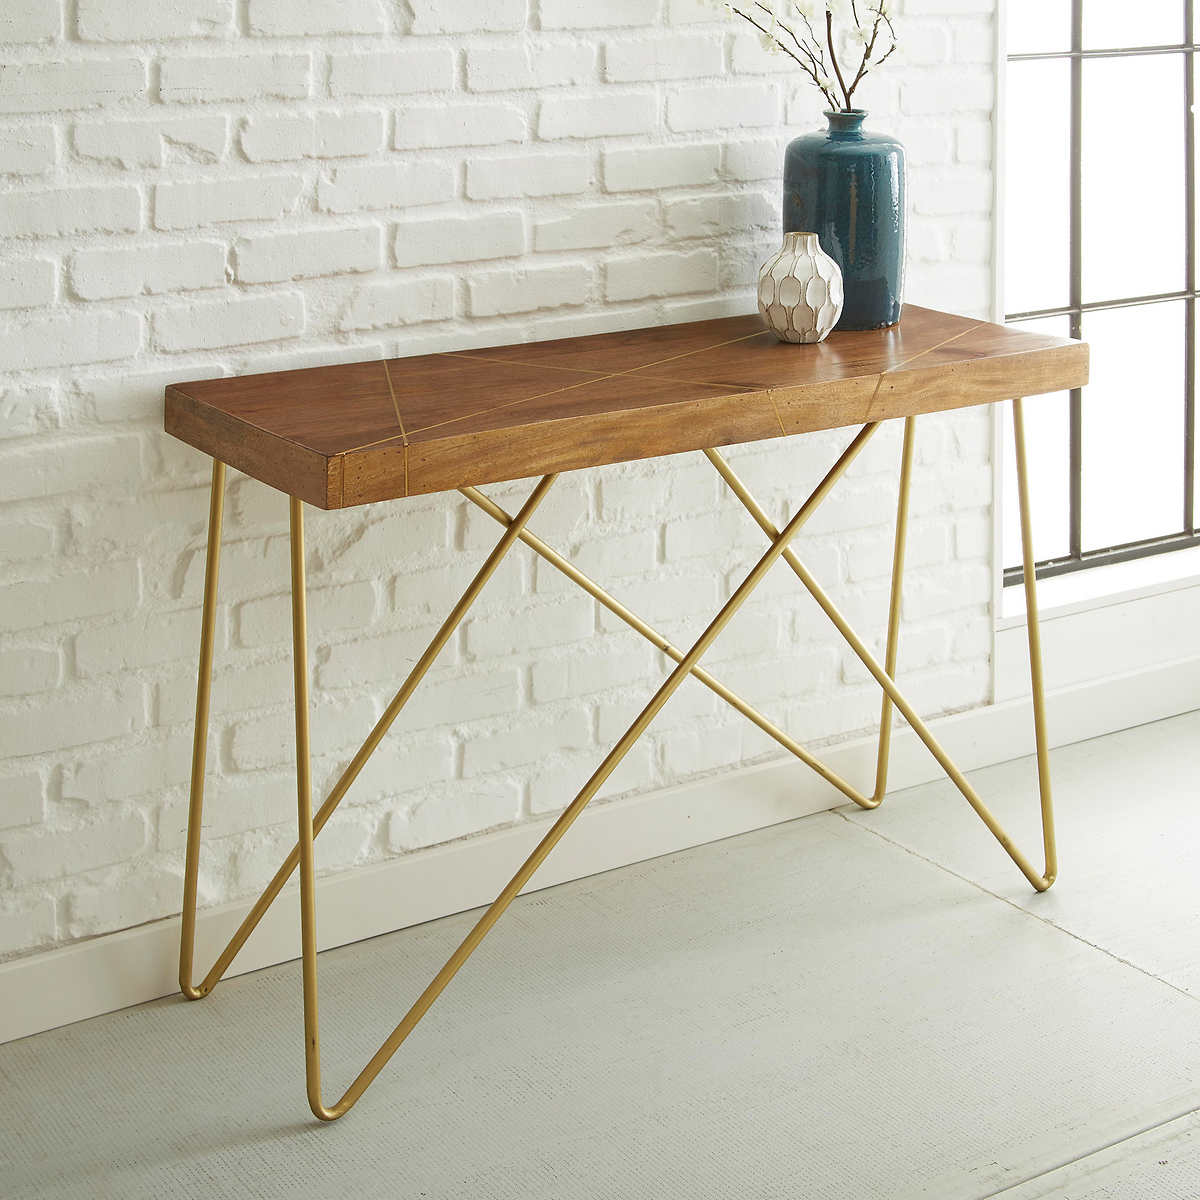 Wood and brass sofa table